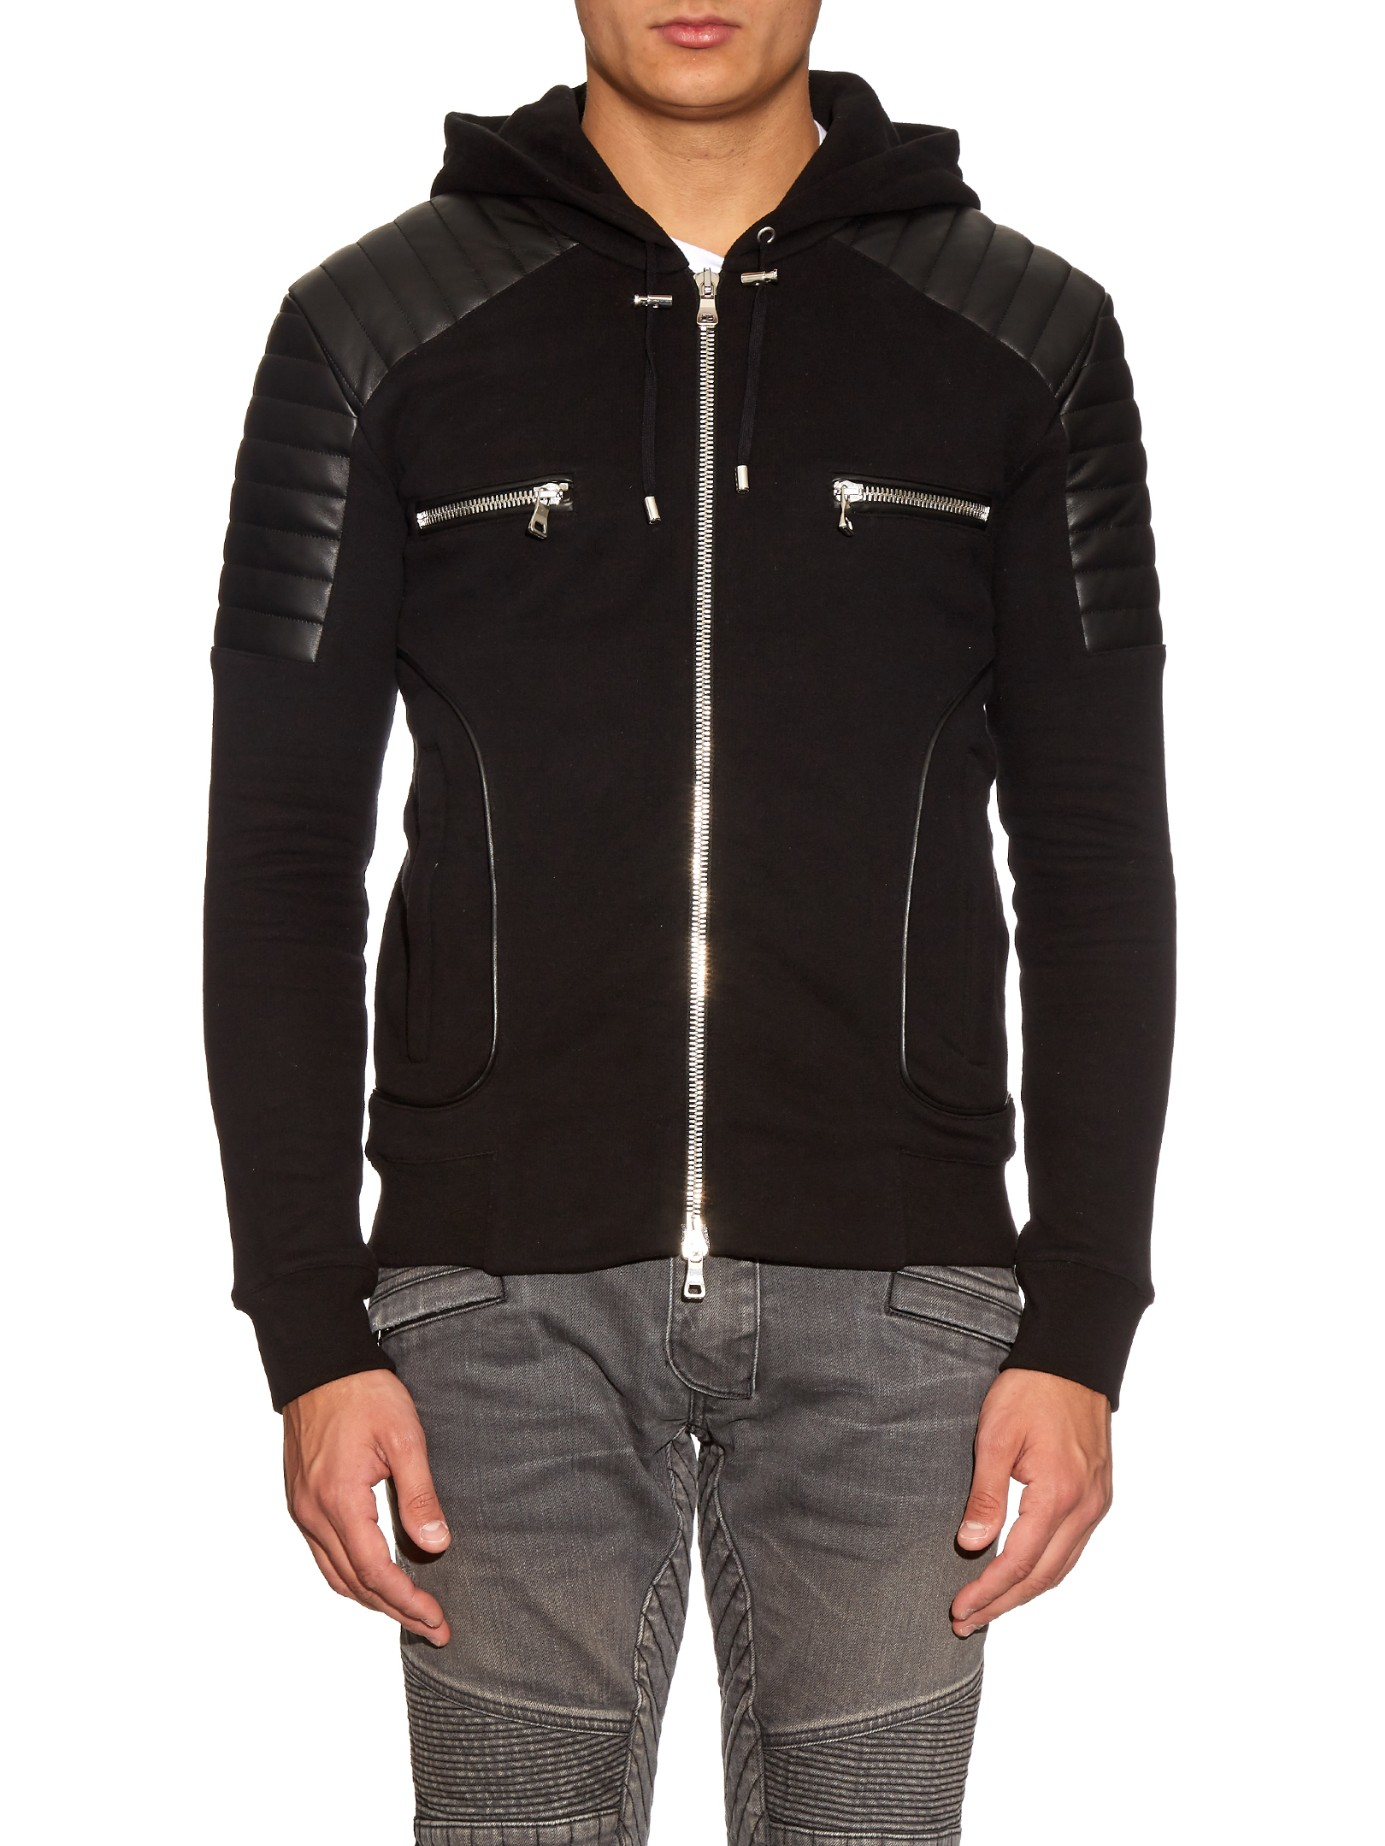 Shop for Biker hoodies & sweatshirts from Zazzle. Choose a design from our huge selection of images, artwork, & photos.